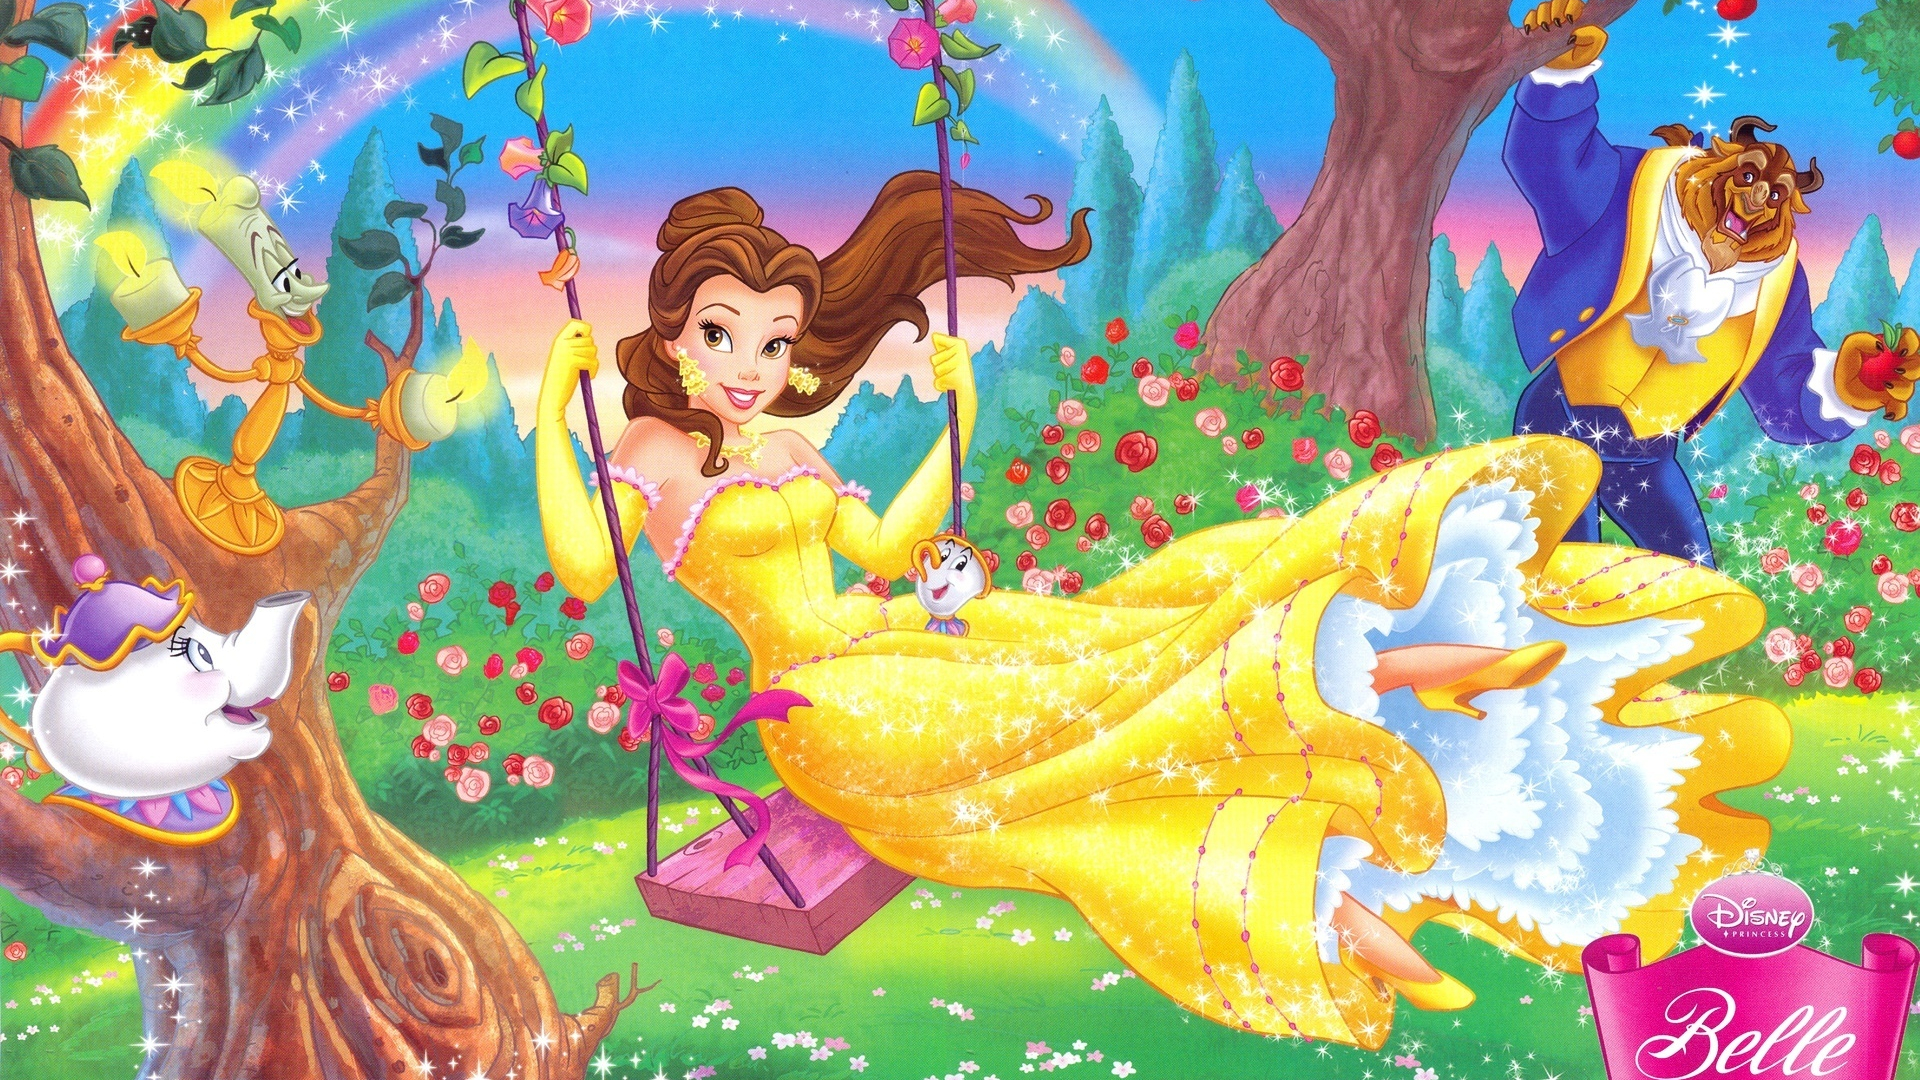 Free Download Belle And Beast Disney Couples Wallpaper 7359497